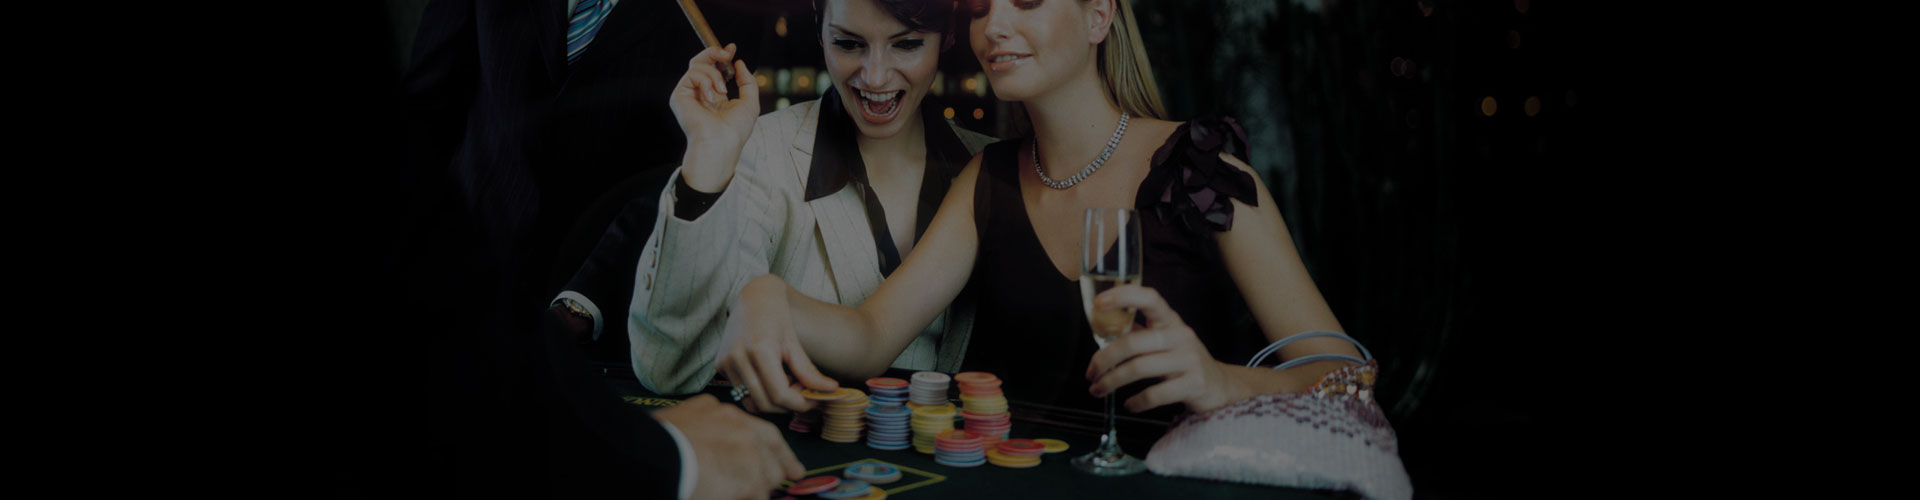 online casino betrug hot casino